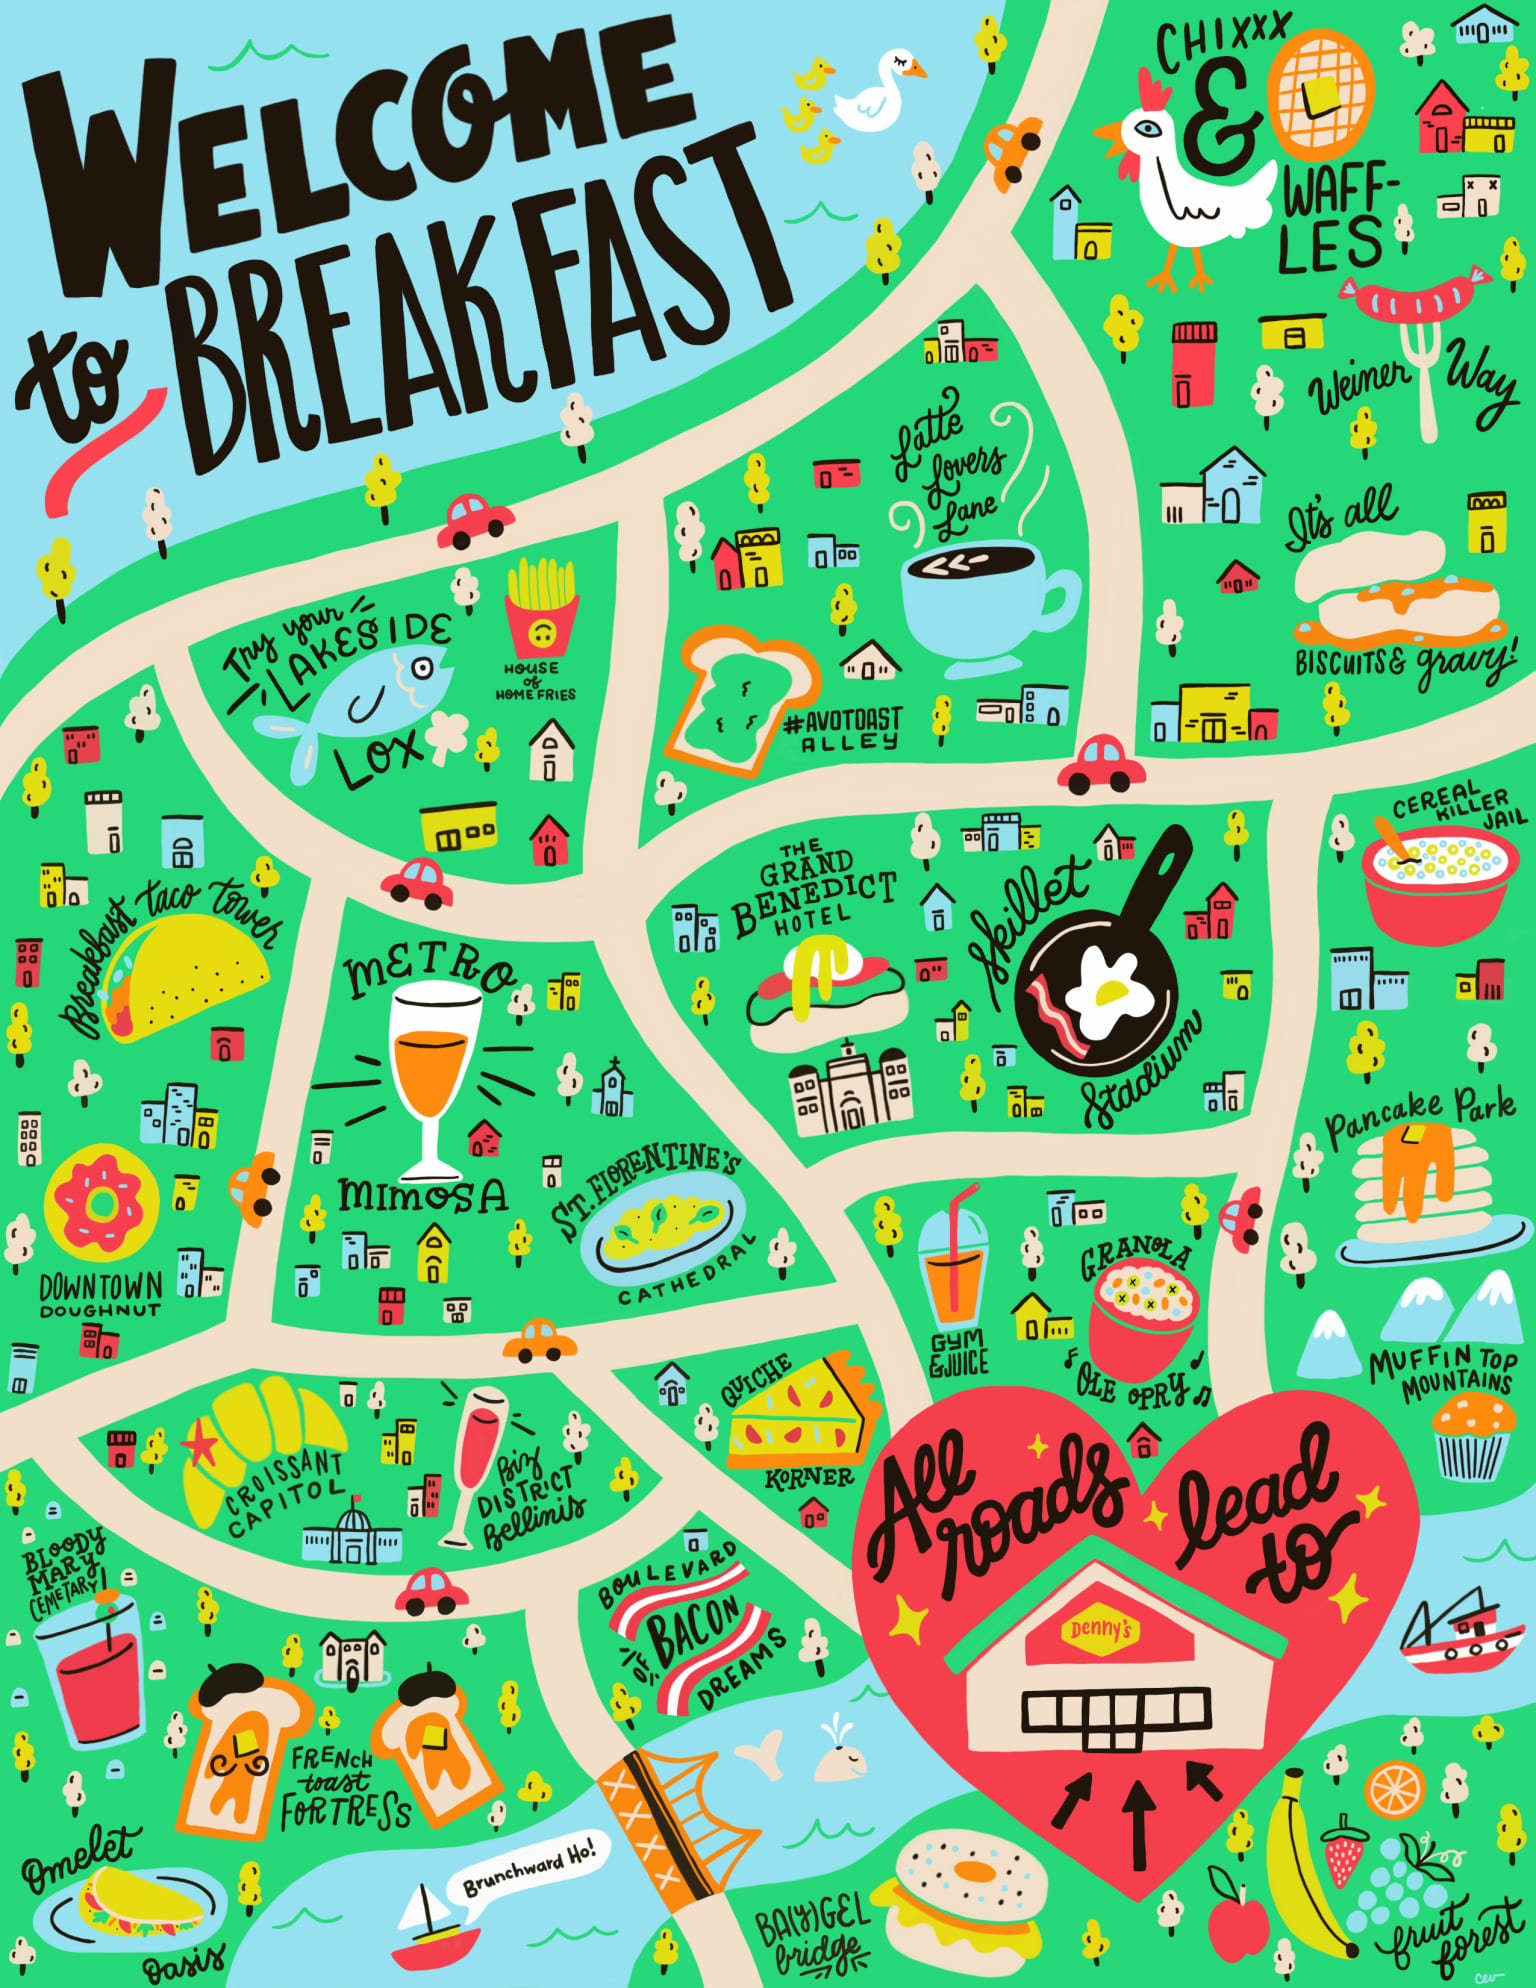 Breakfast Lover's City Guide